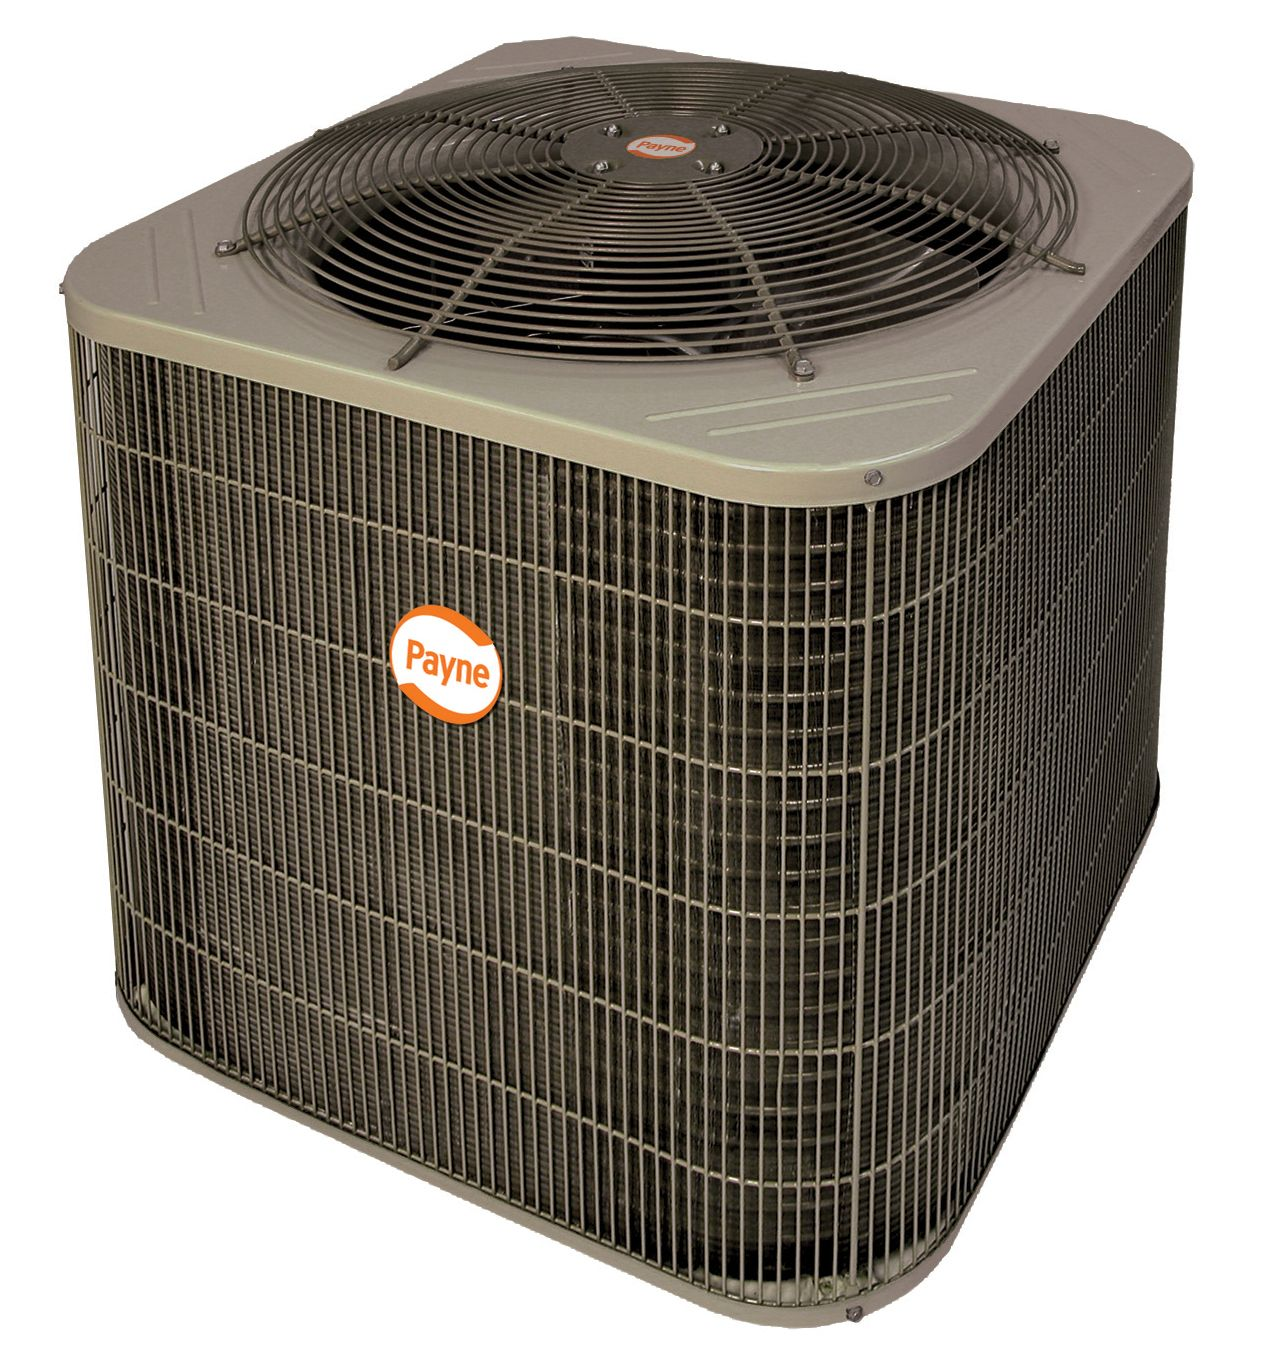 Payne 1 5 Ton 16 Seer Residential Air Conditioner Condensing